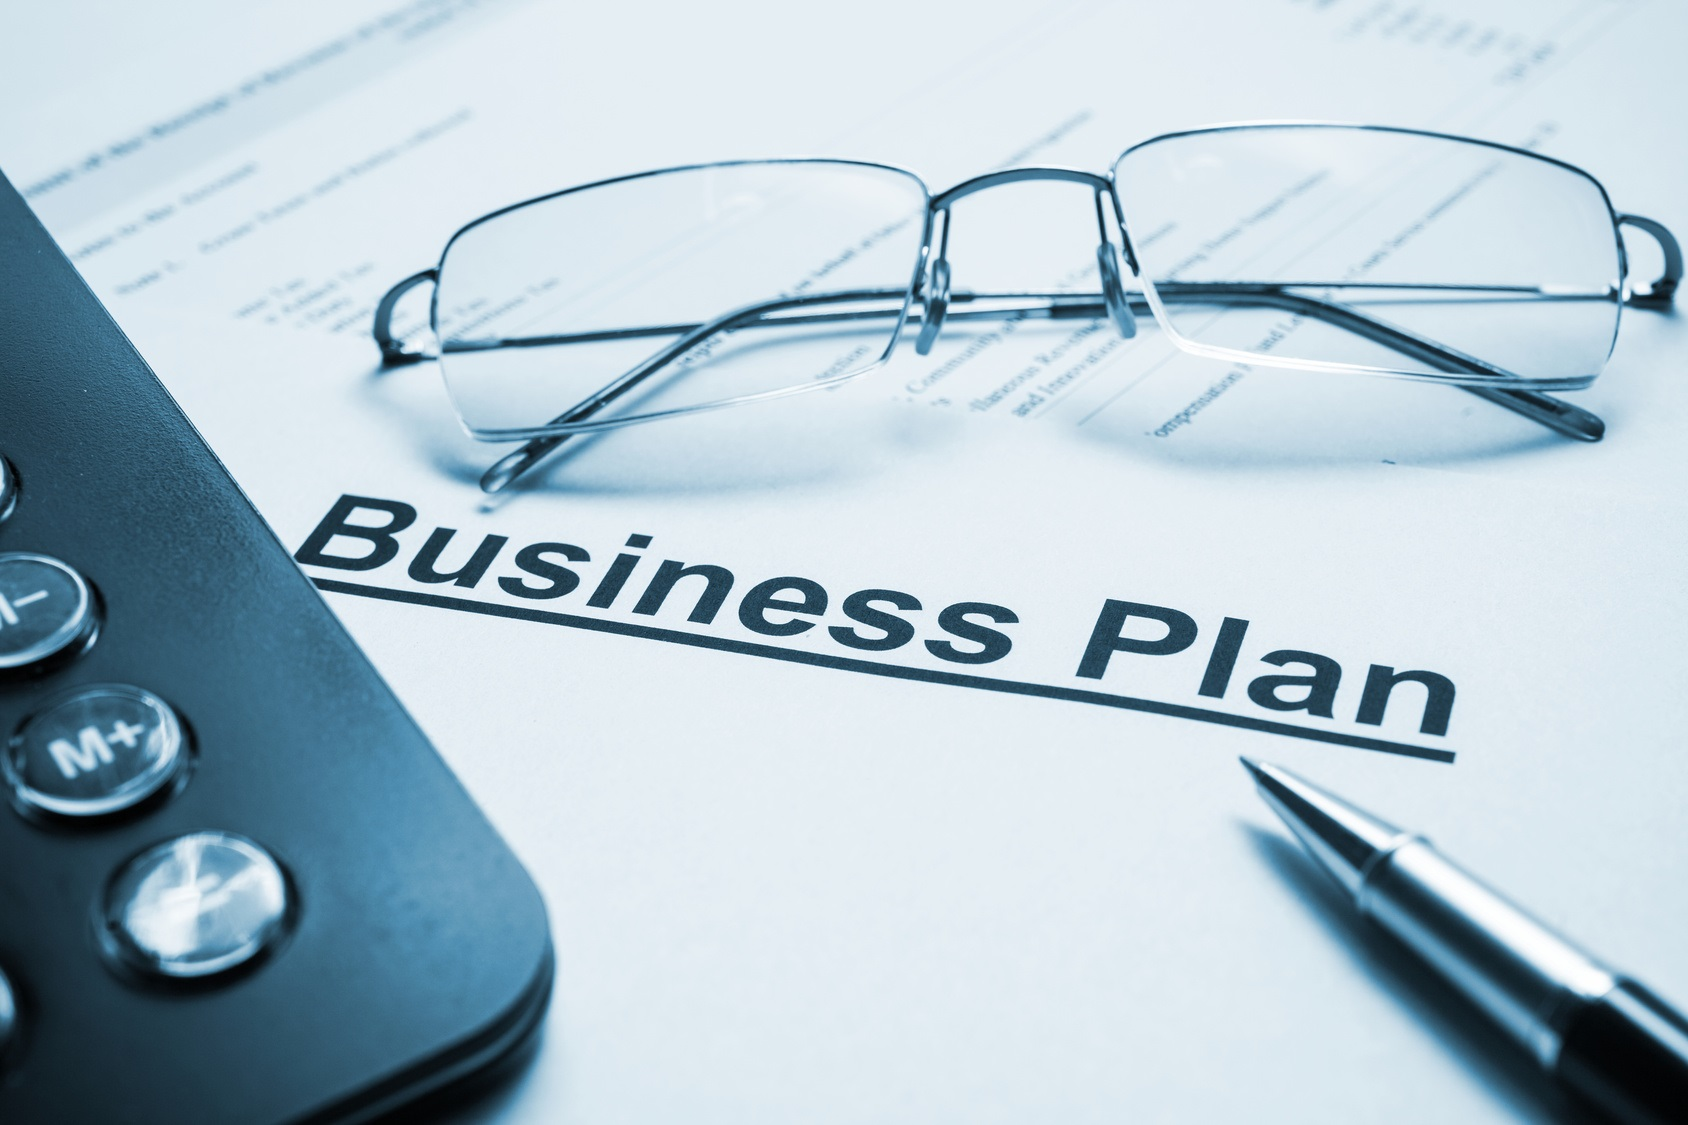 Master Business Plan